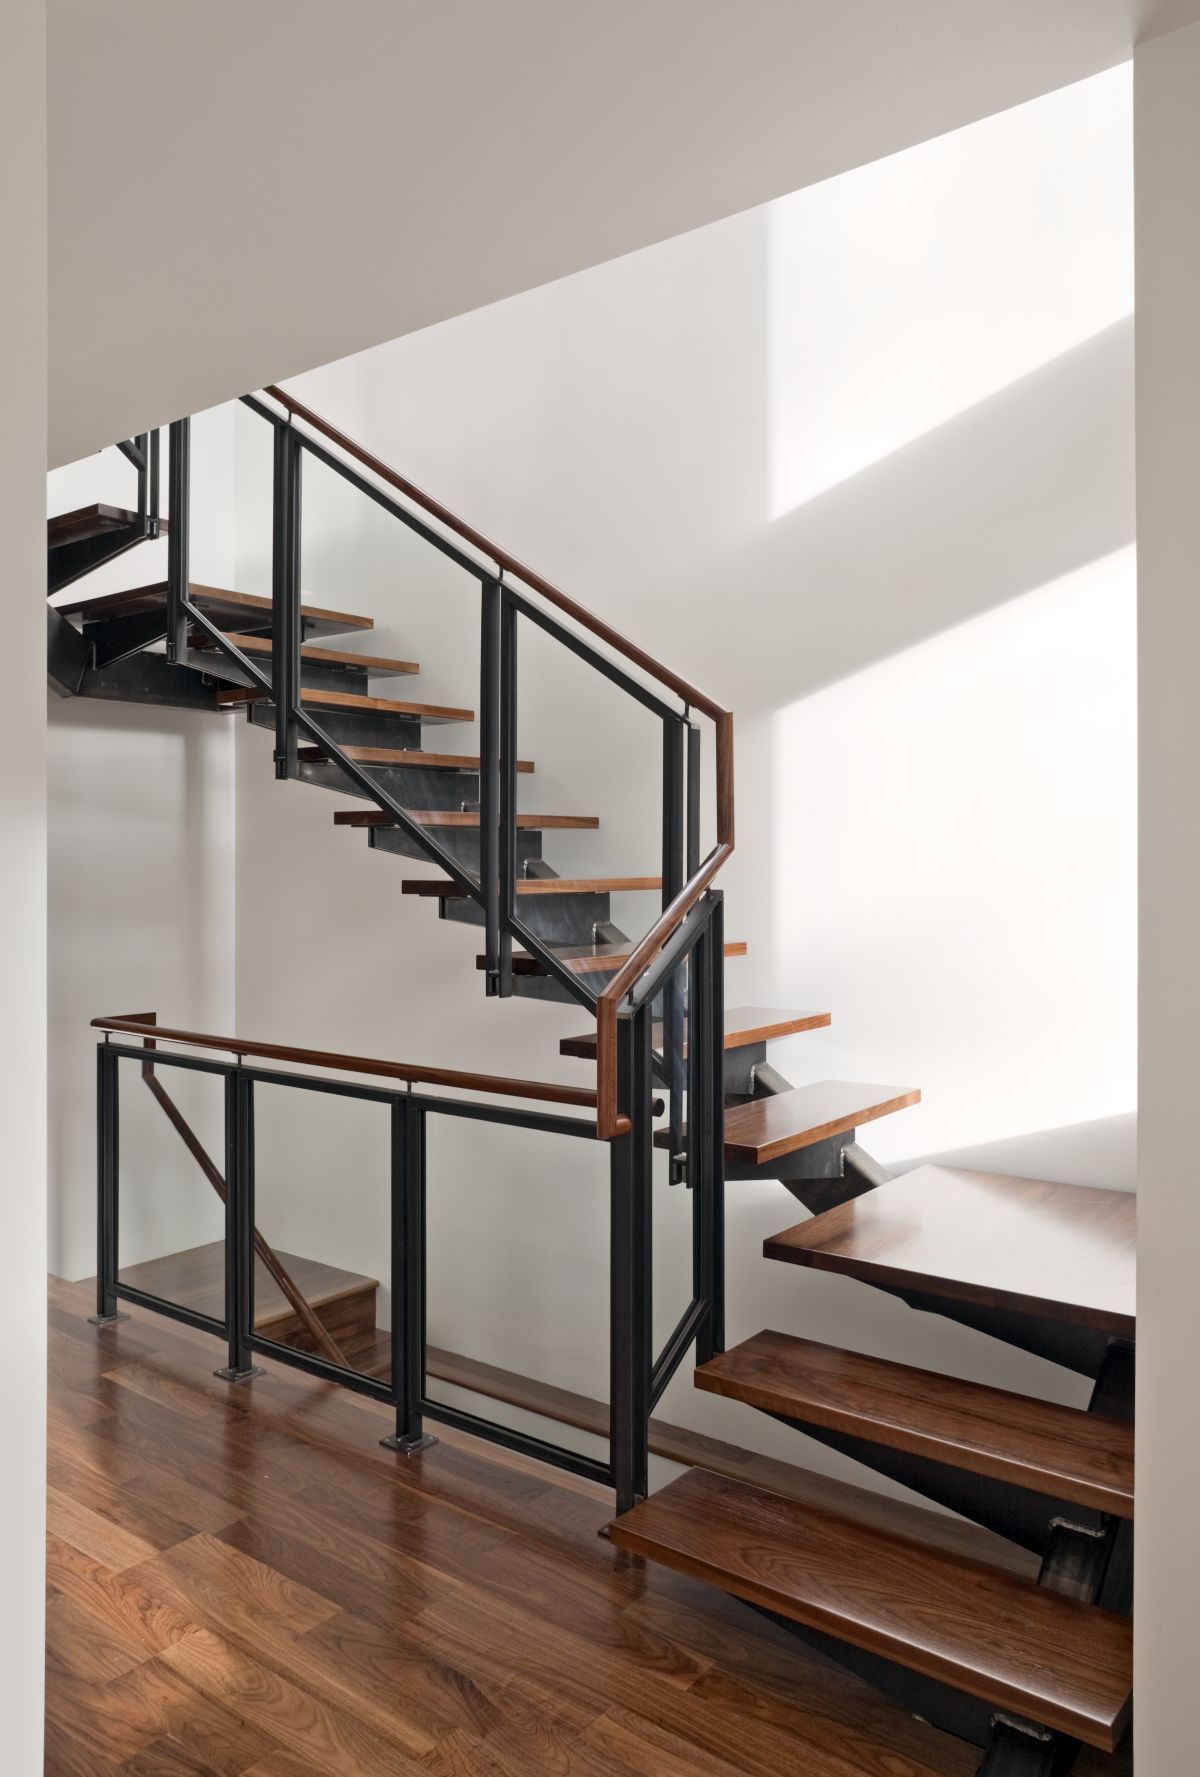 Stairs Design Ideas stair designs by stairs by slattery acquroff Modern House With Black Windows And Stainless Steel Railings Home Heavenly Ideas Decoration Gorgeous Metal Banister